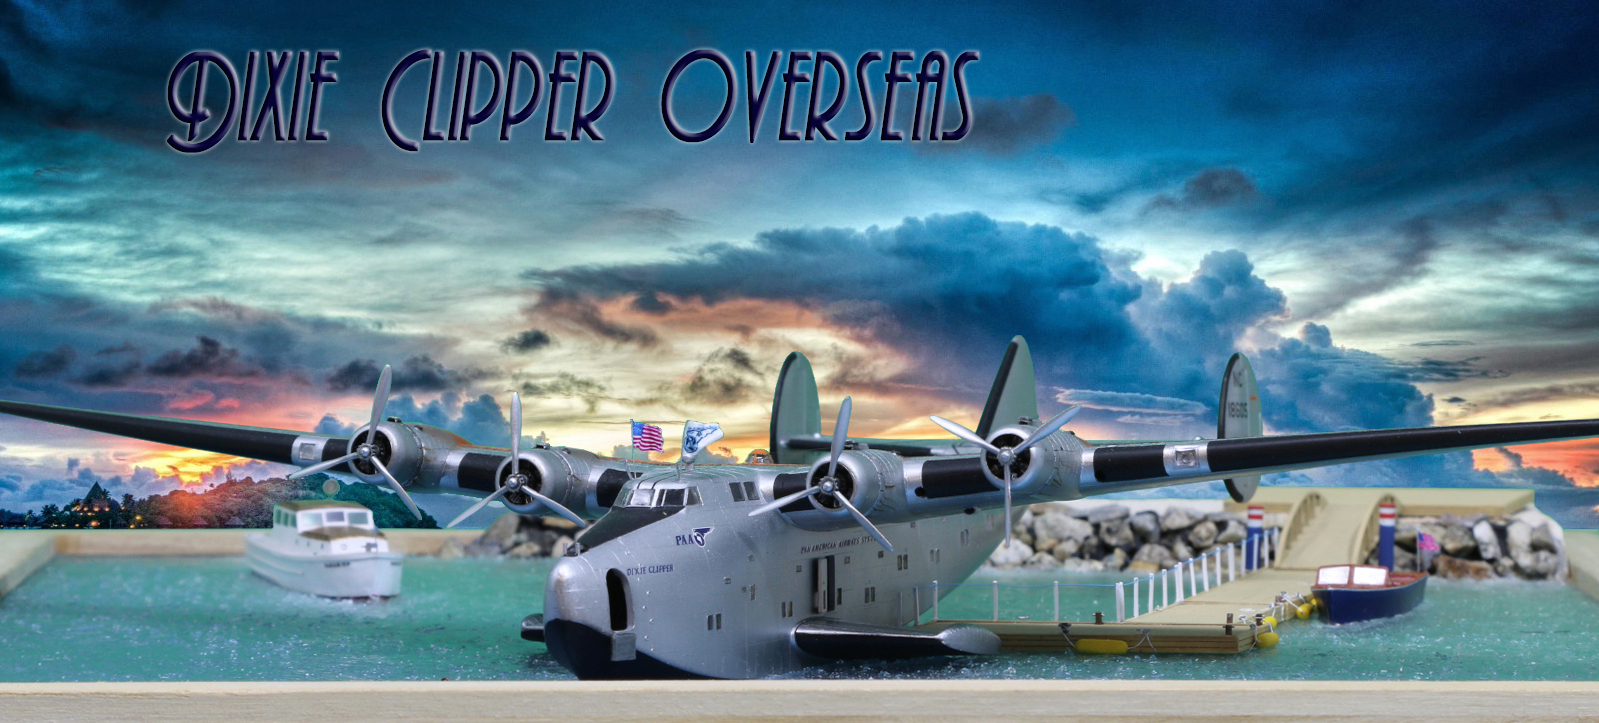 "Boeing 314 ""Dixie Clipper"" 1939-1950 (/1/144 Minicraft) - Page 8 Img_0341"